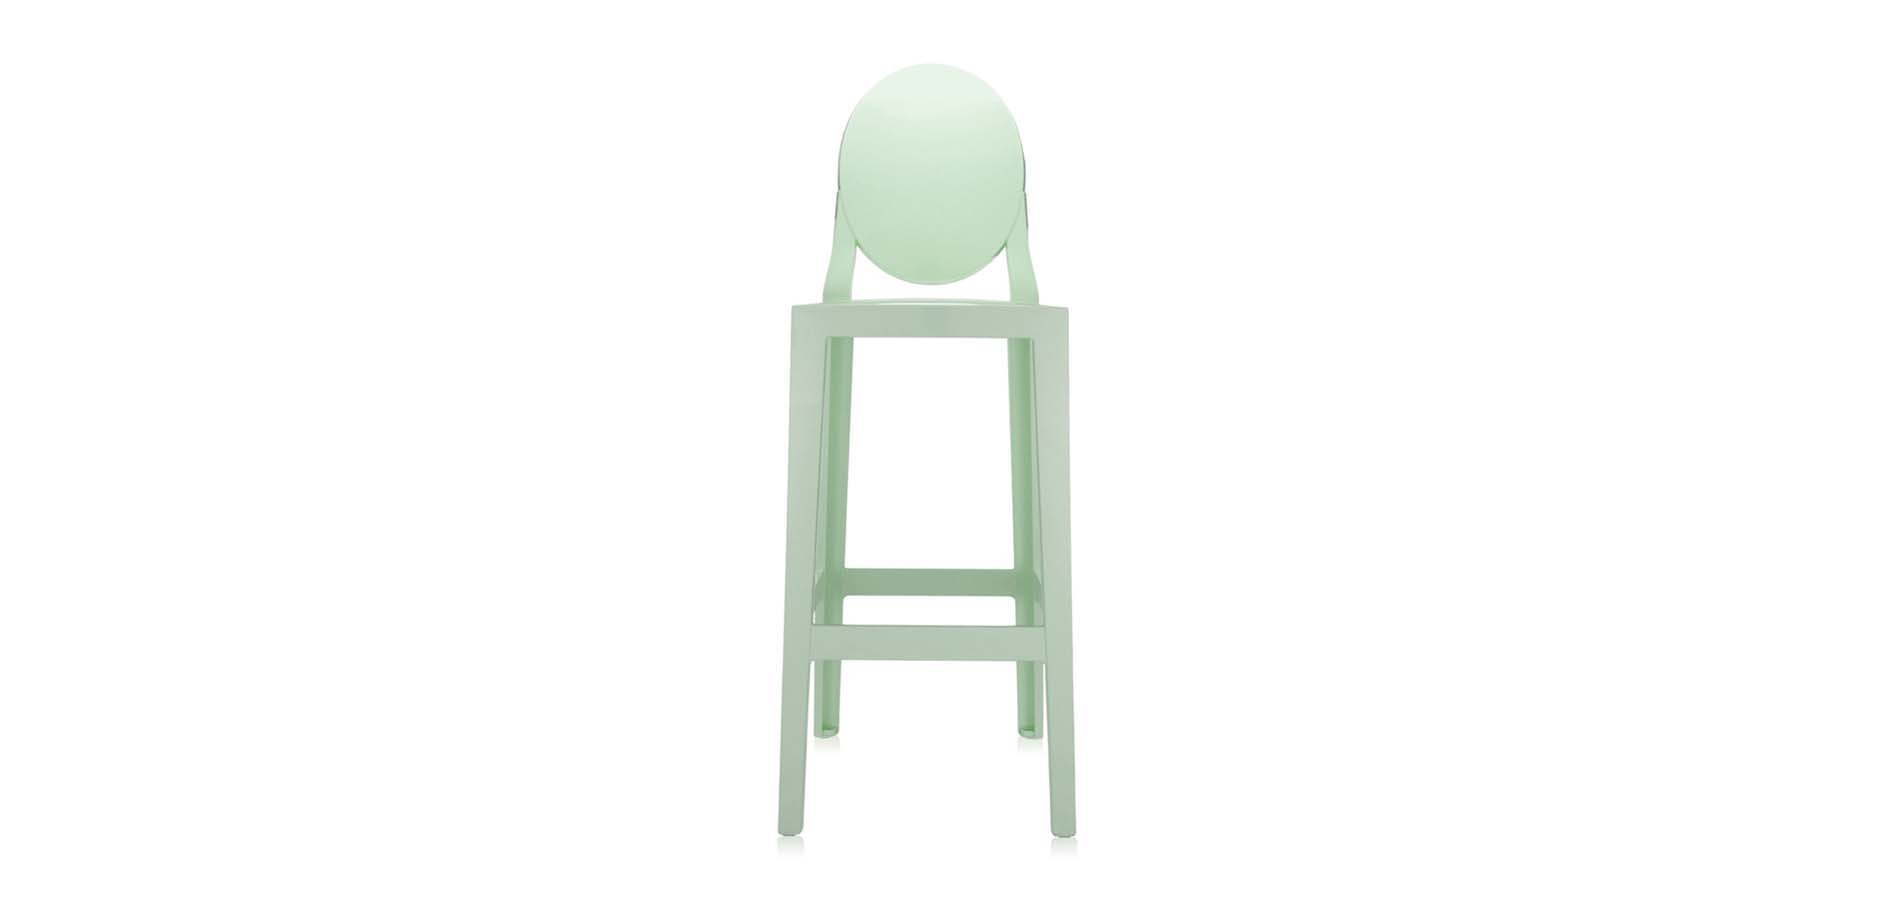 One More Bar Stool 110 Kartell Έ ό